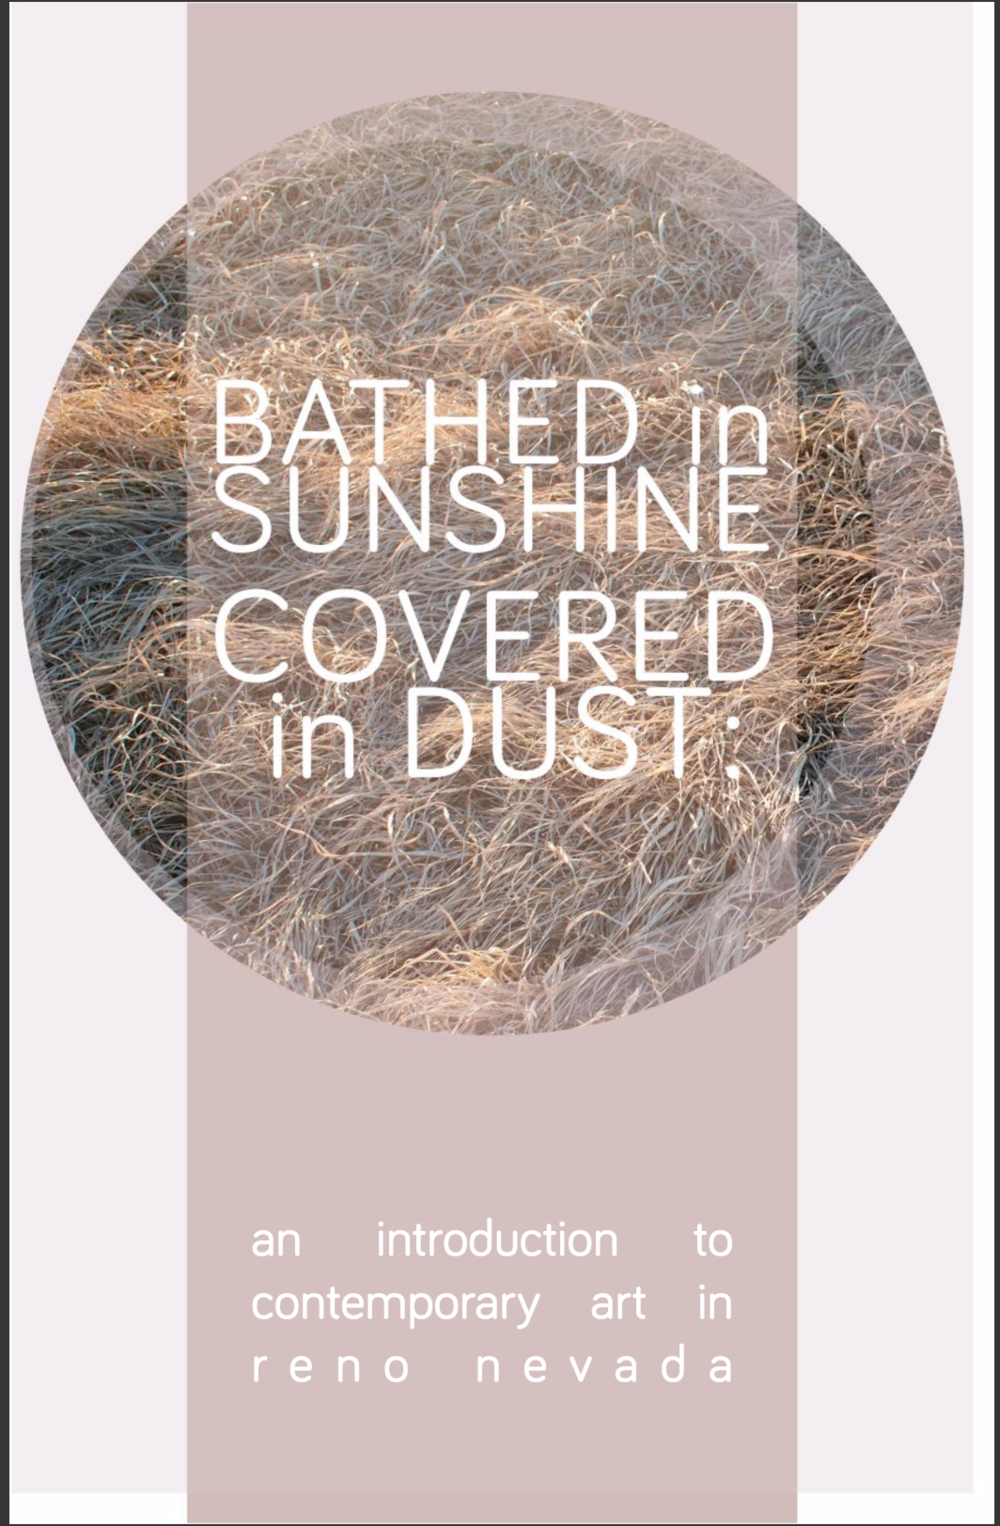 Bathed in Sunshine, Covered in Dust - February 2014 A catalog from a curated exhibition at the Holland Project of contemporary Nevada art. My collaborative project with Jared Stanley, Lake Lahontan's Maritime Legacy was featured.